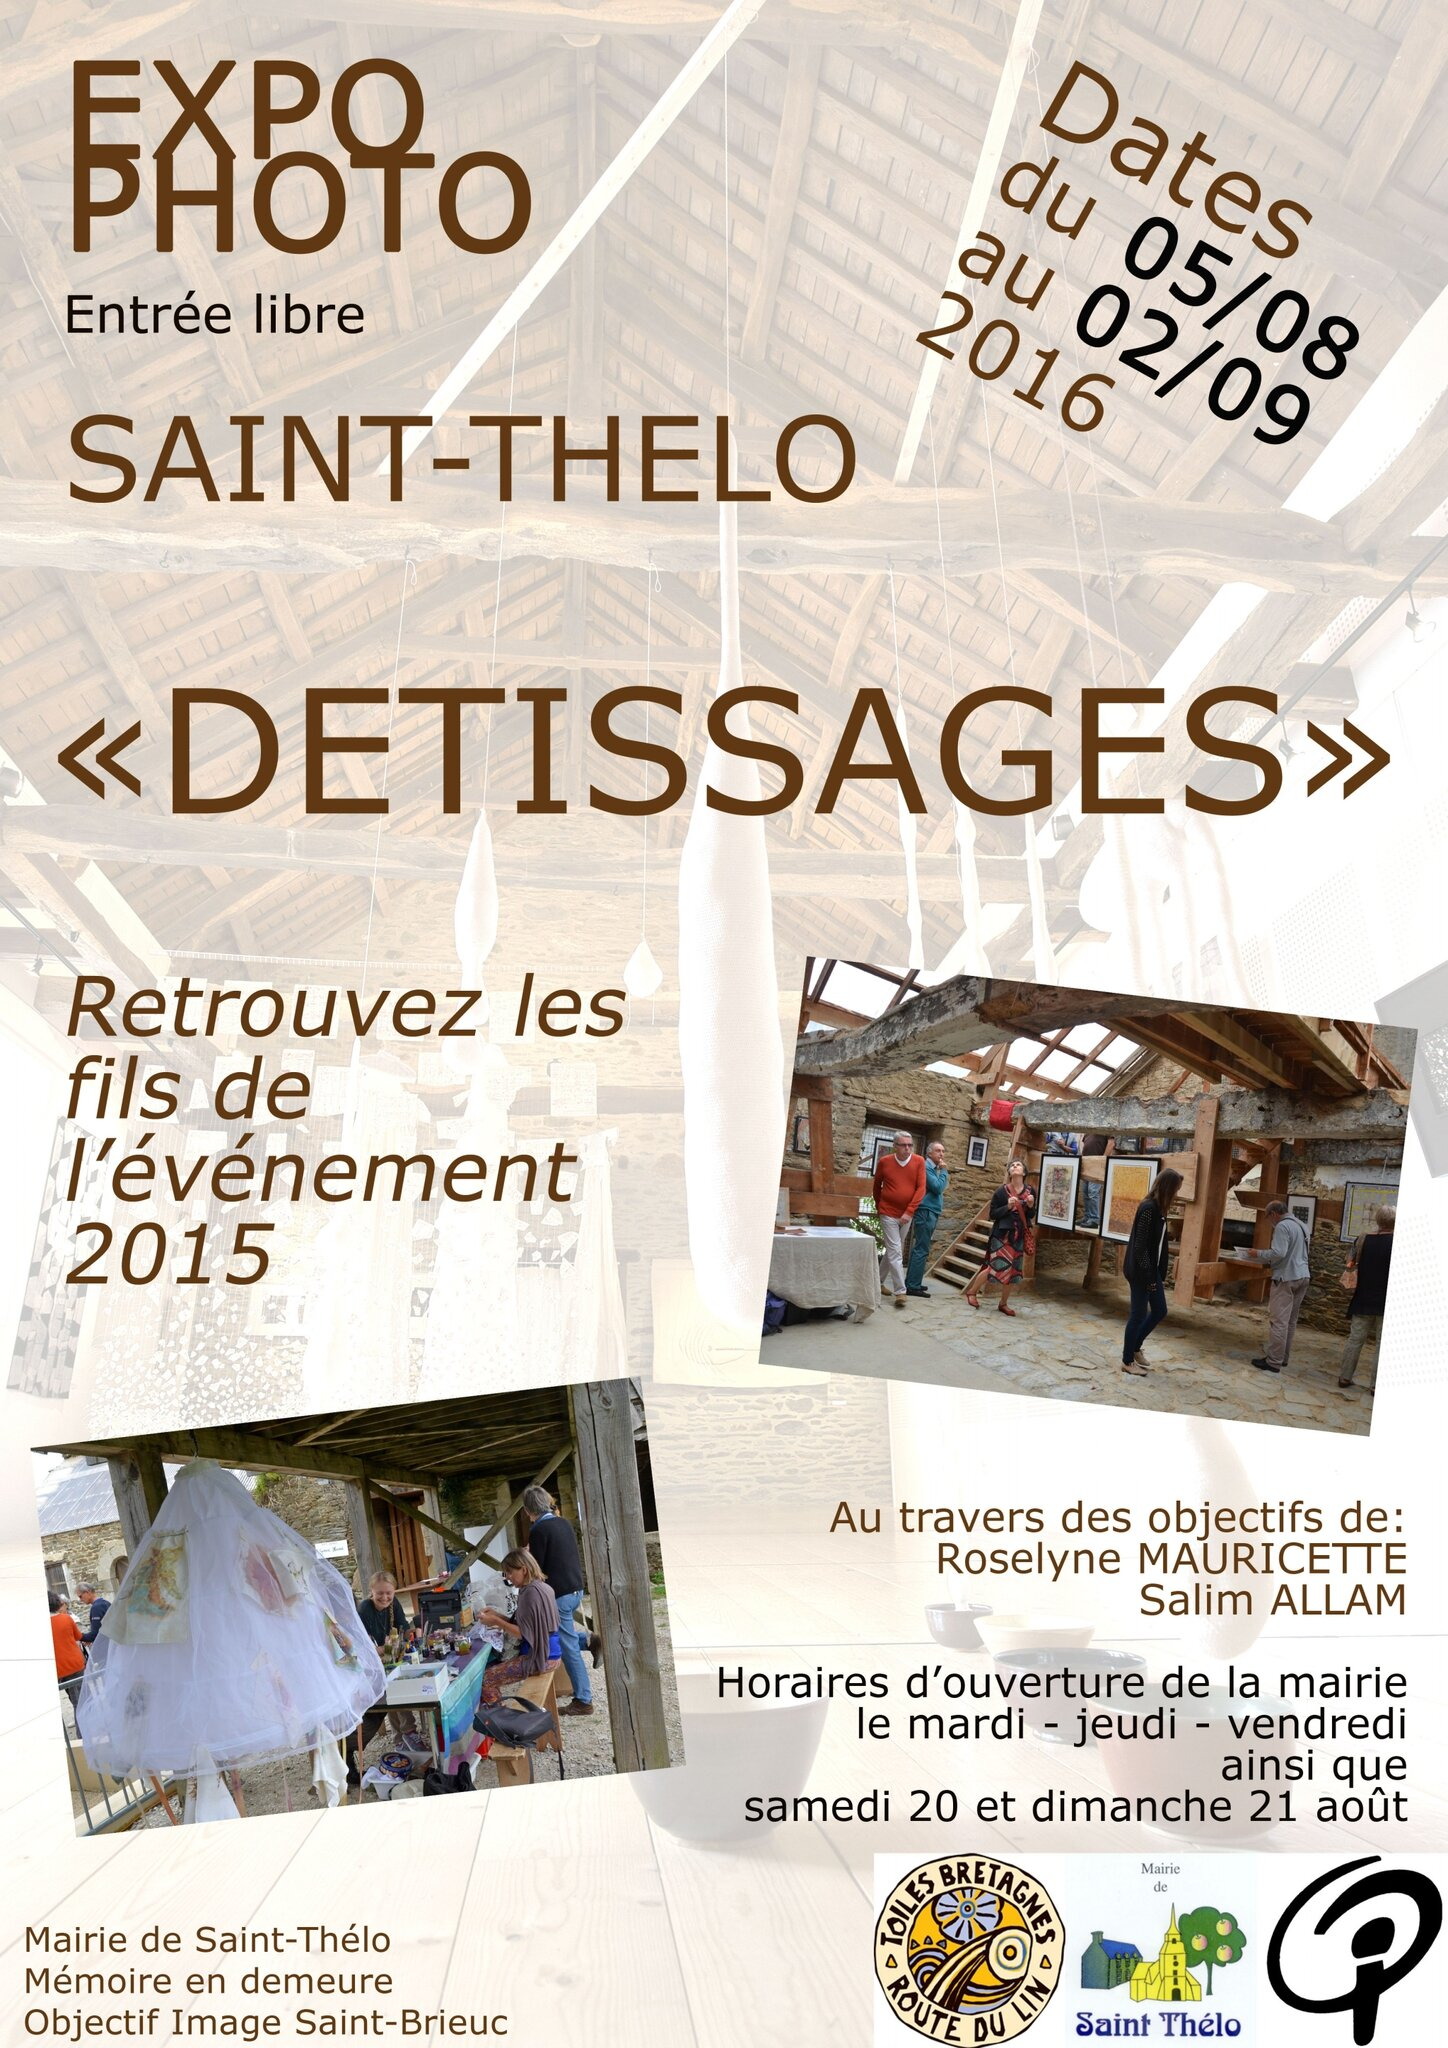 Expo photo à Saint-Thélo (22460)